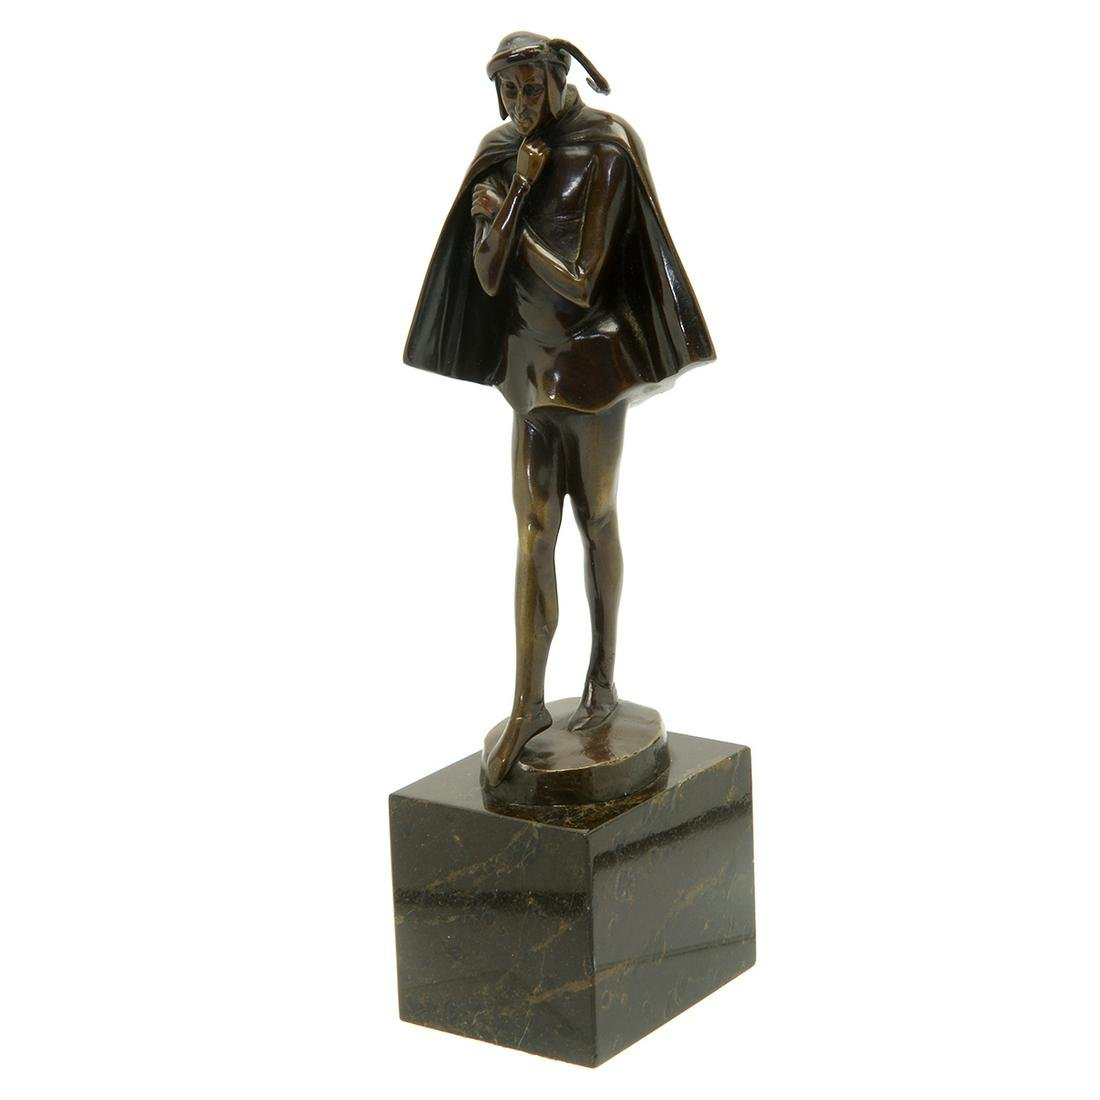 Art Deco Style Schmidt-Felling Bronze Figure of